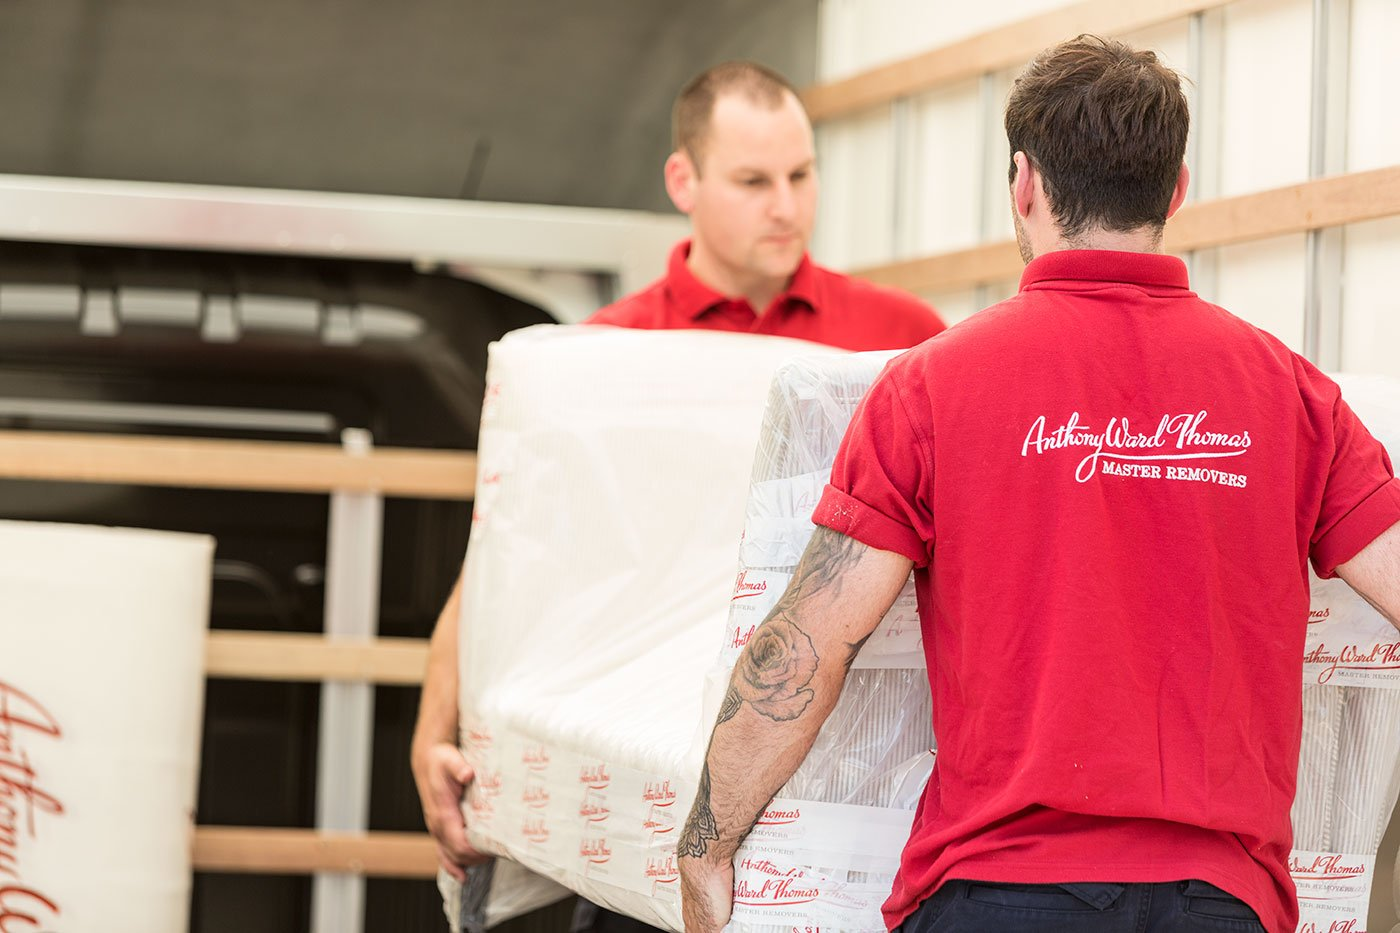 Anthony Ward Thomas – The Highest Rated Moving Company in London